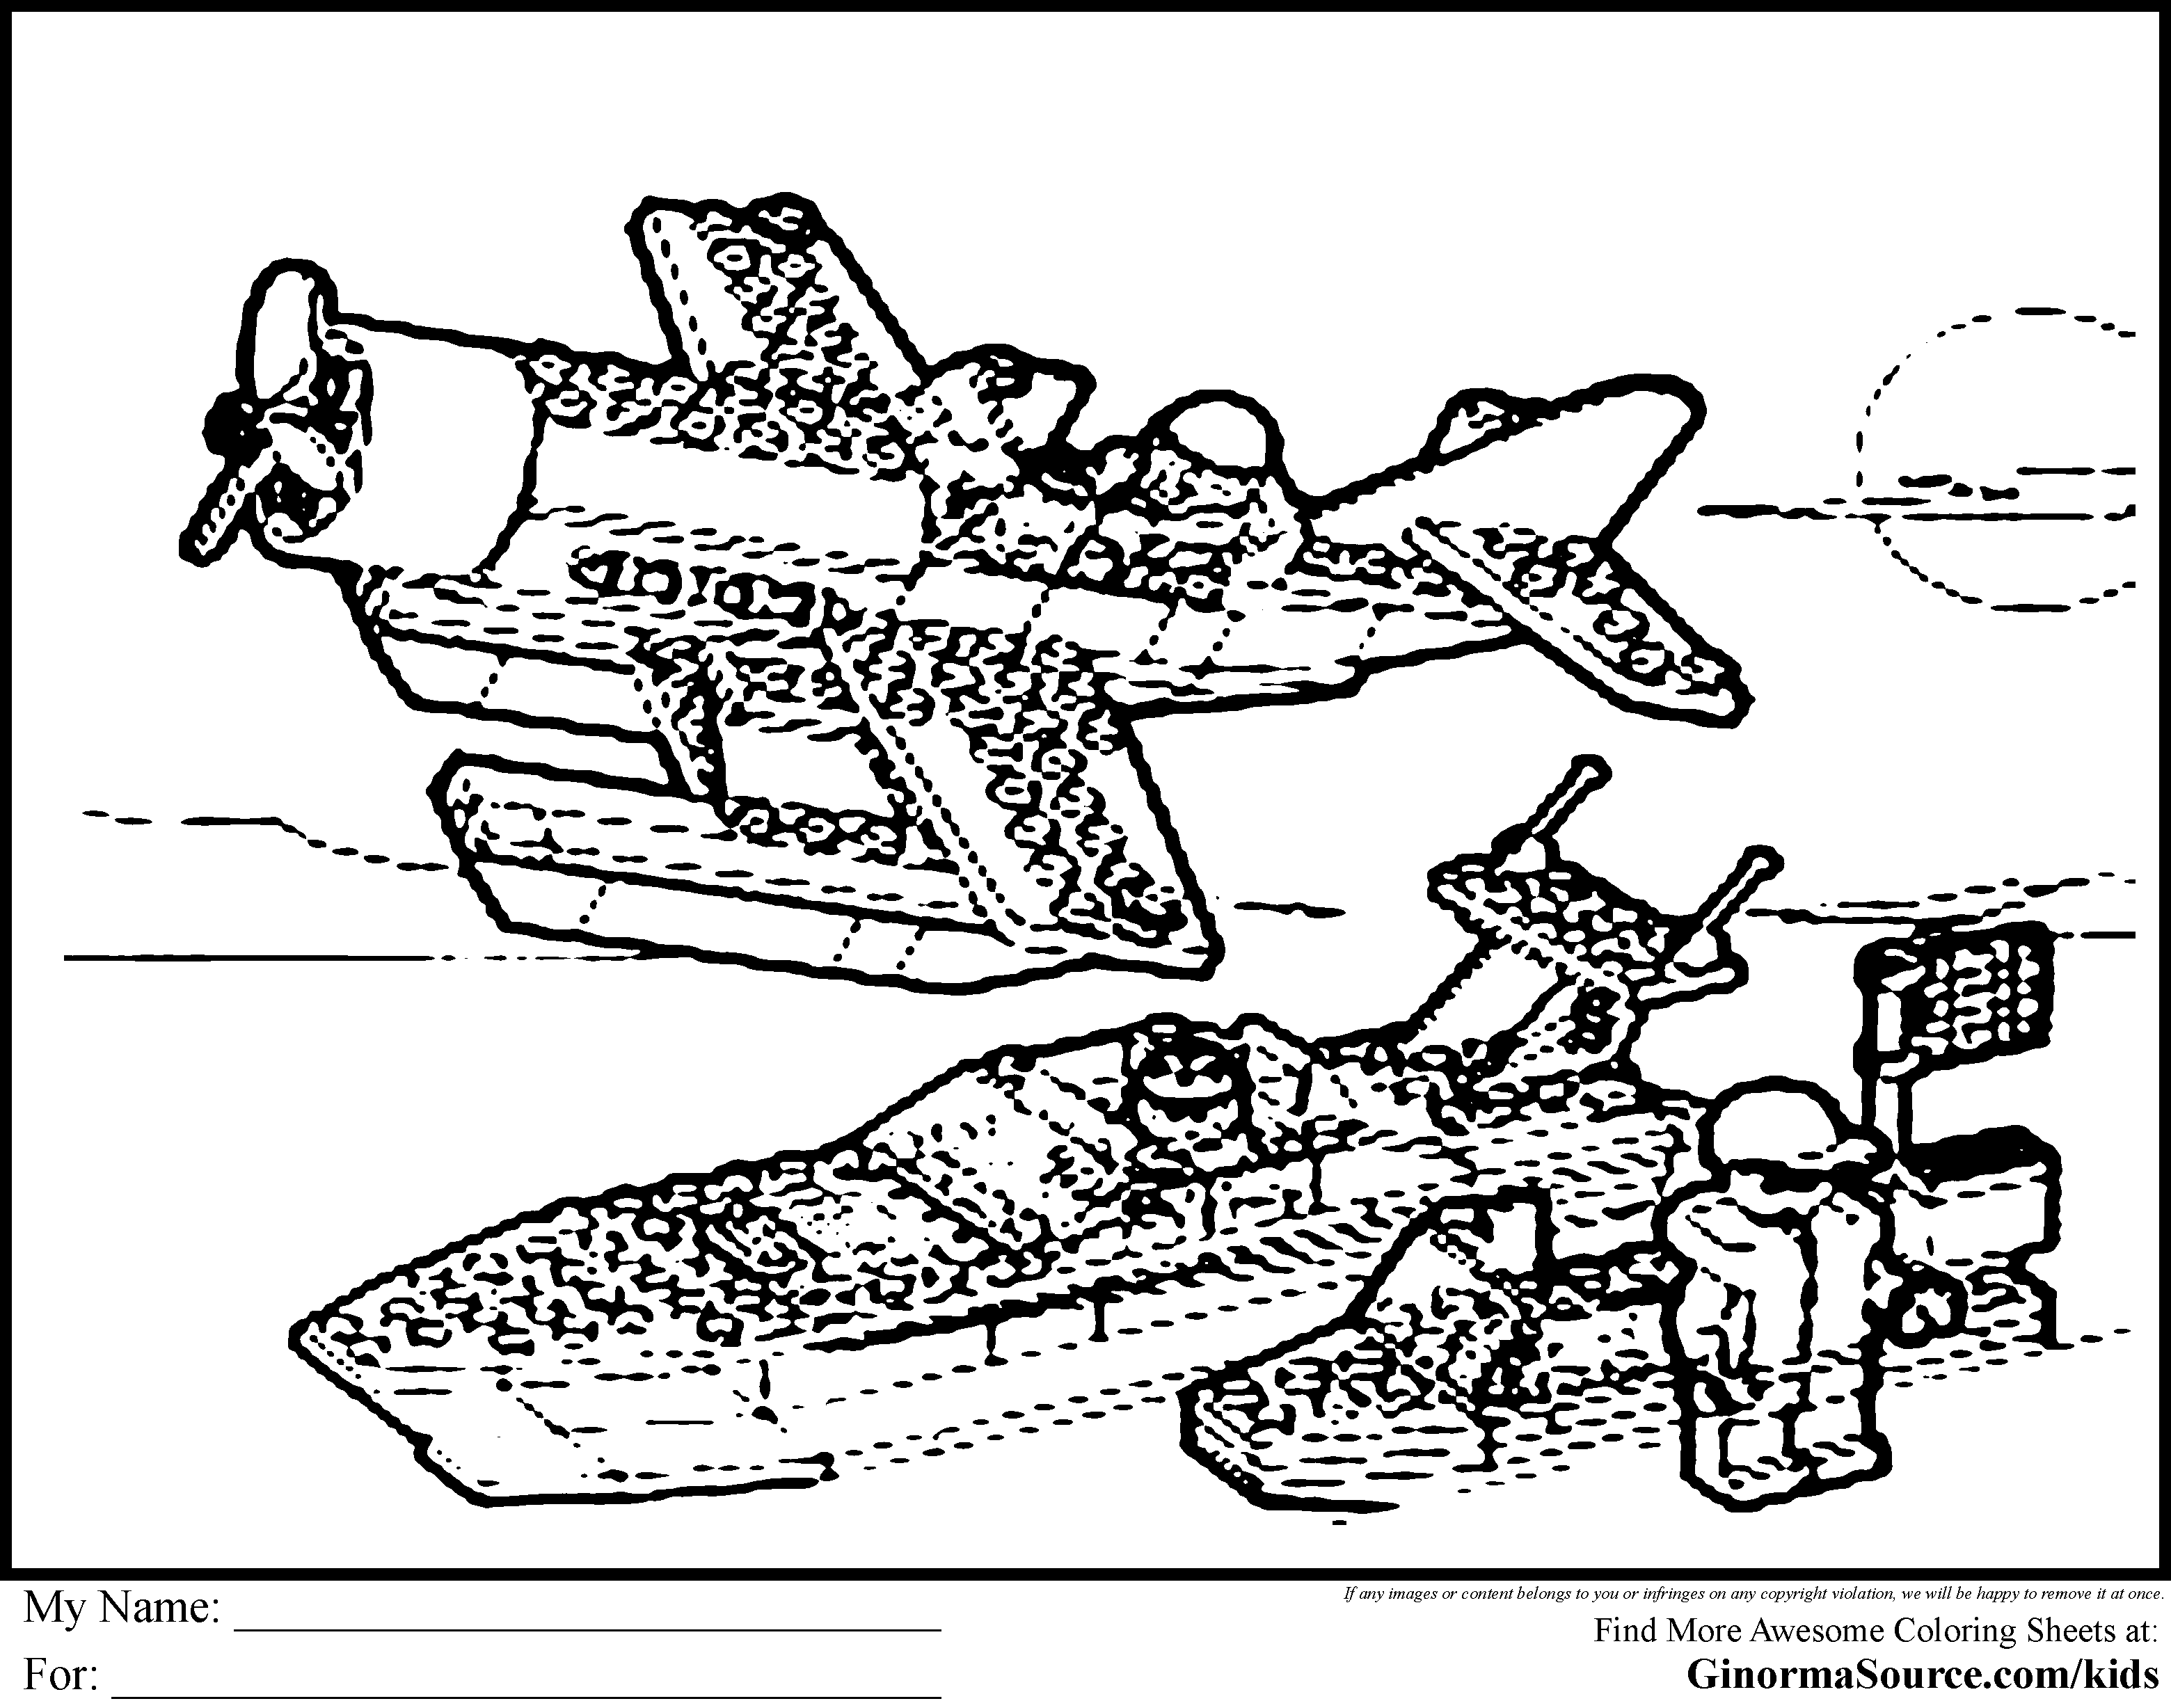 Lego City Printable Coloring Pages